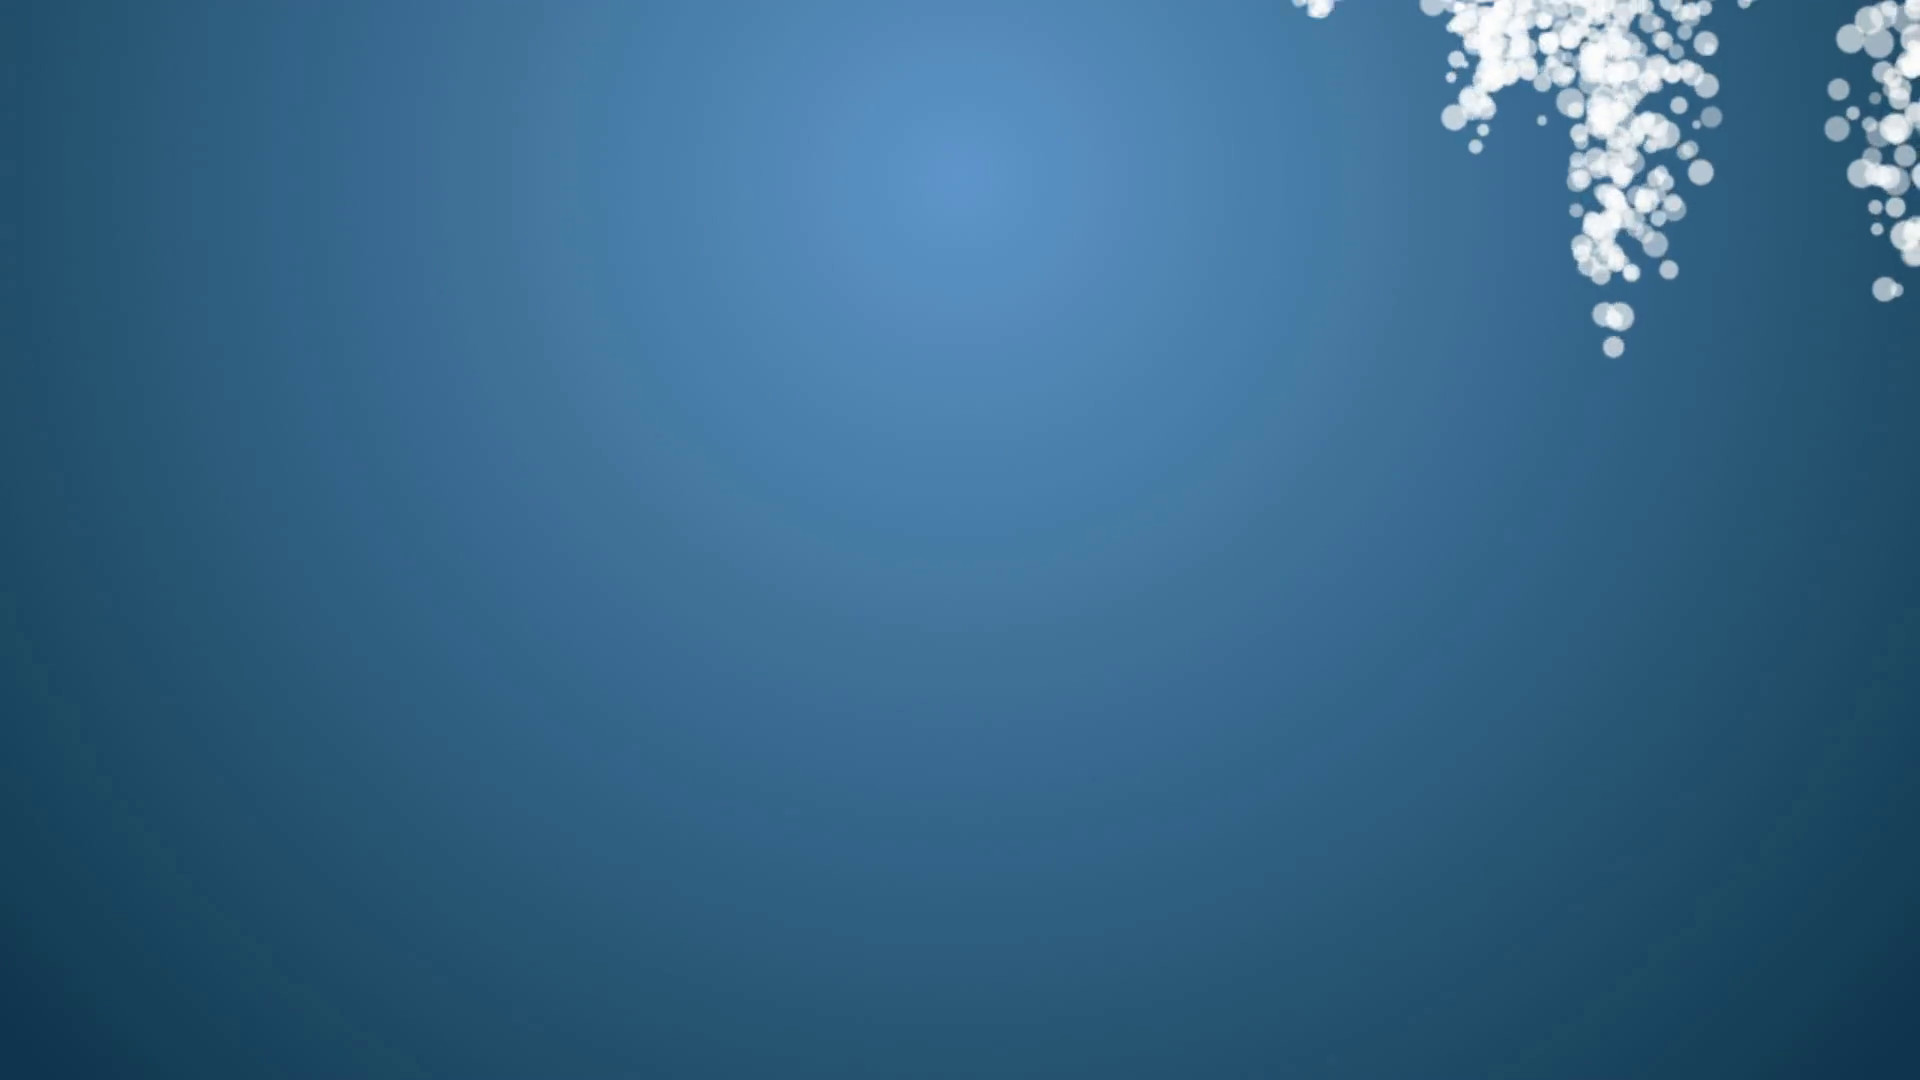 Subscription Library Blue abstract wallpaper